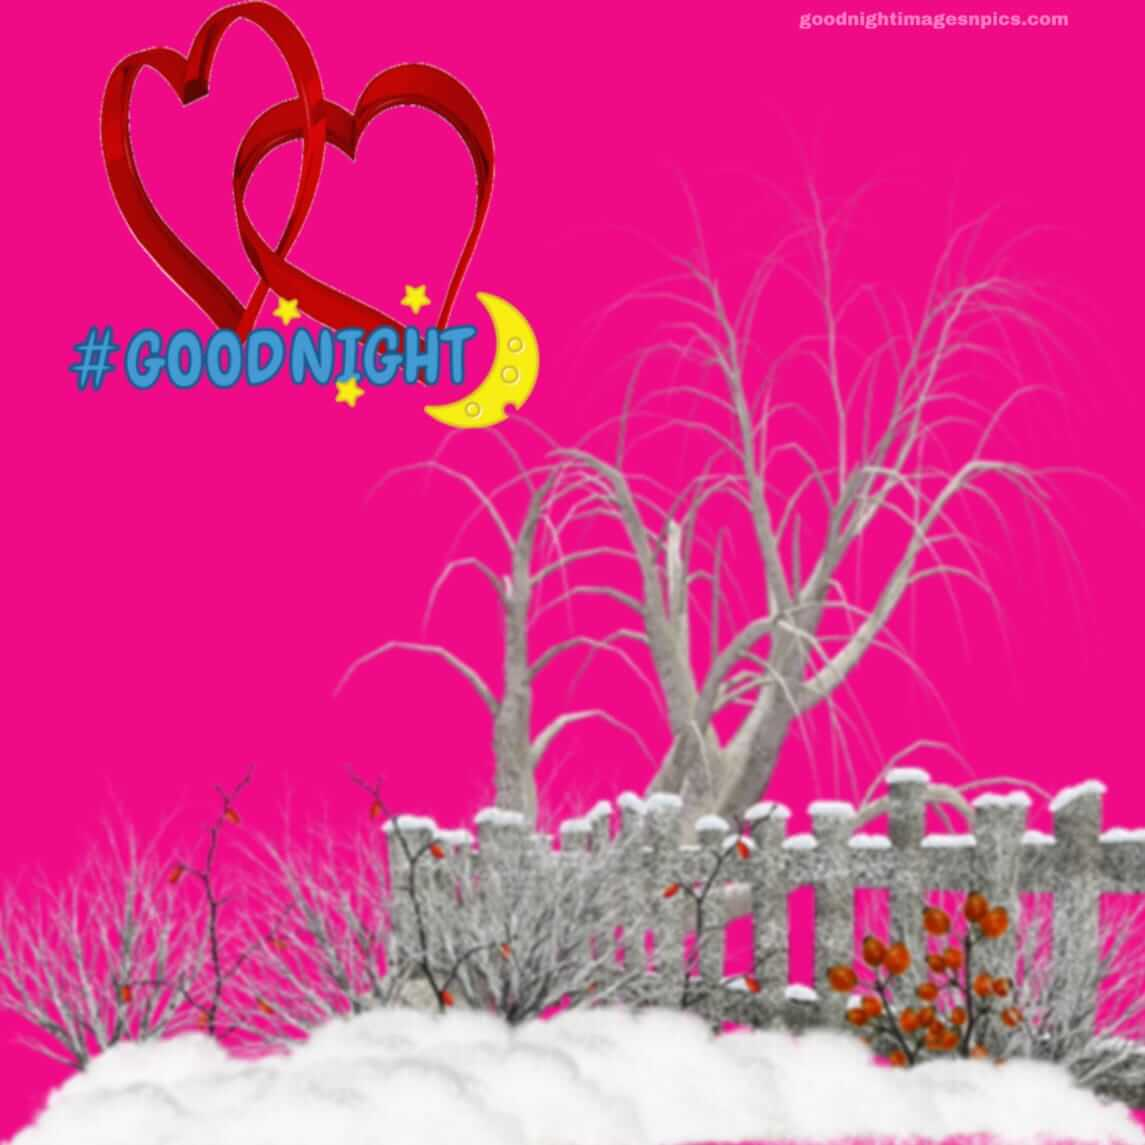 Good Night Images With Heart